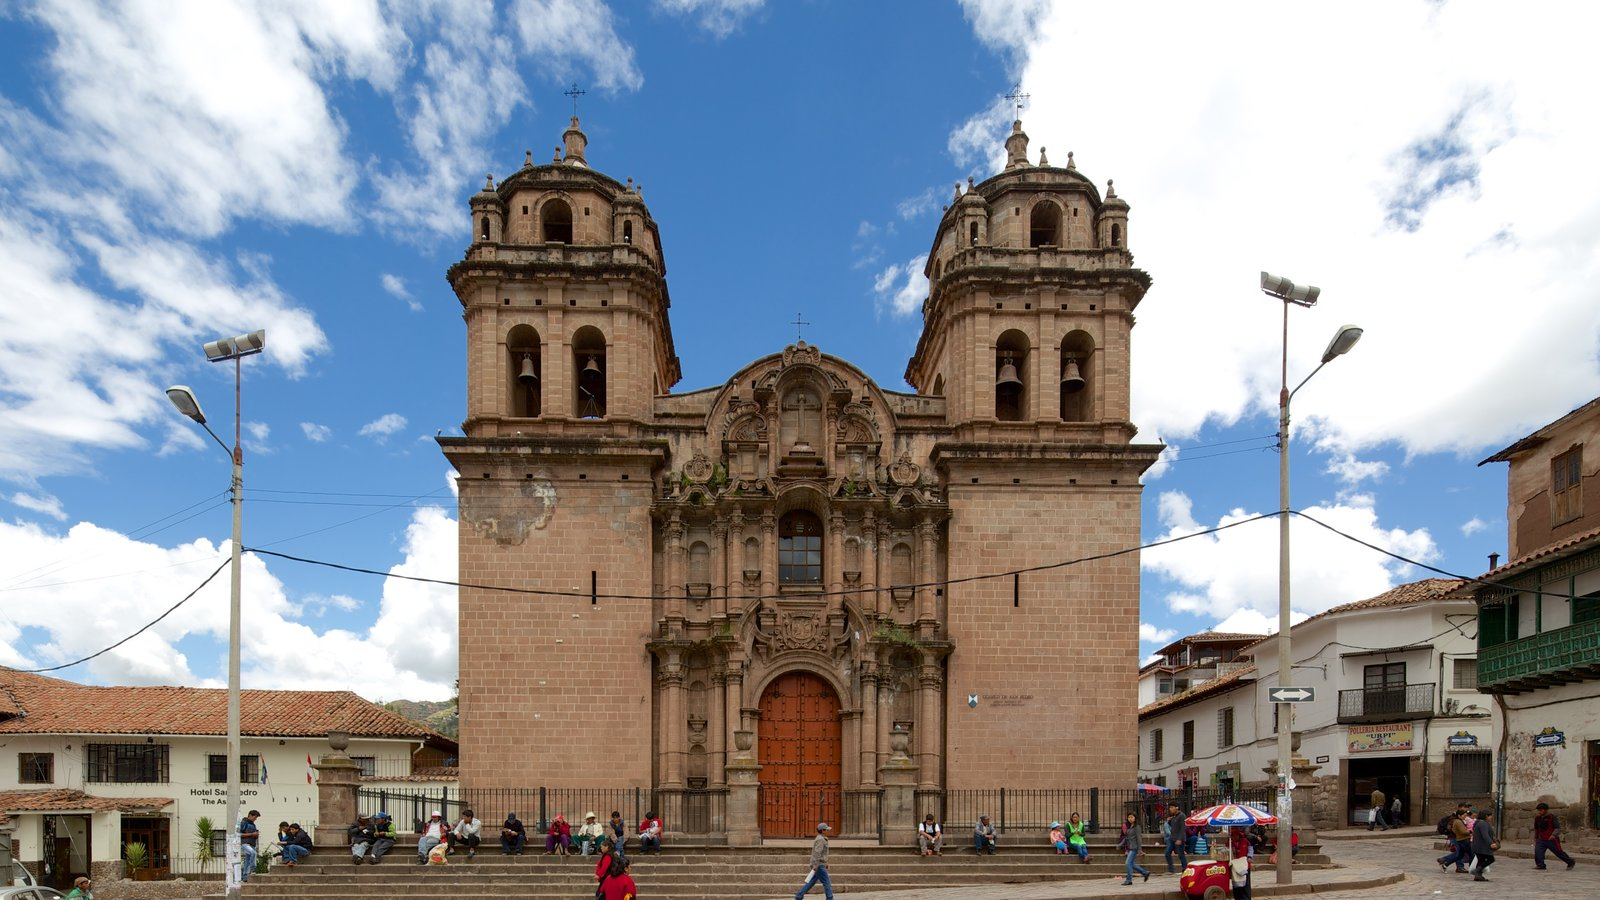 Cusco showing a church or cathedral, street scenes and heritage architecture